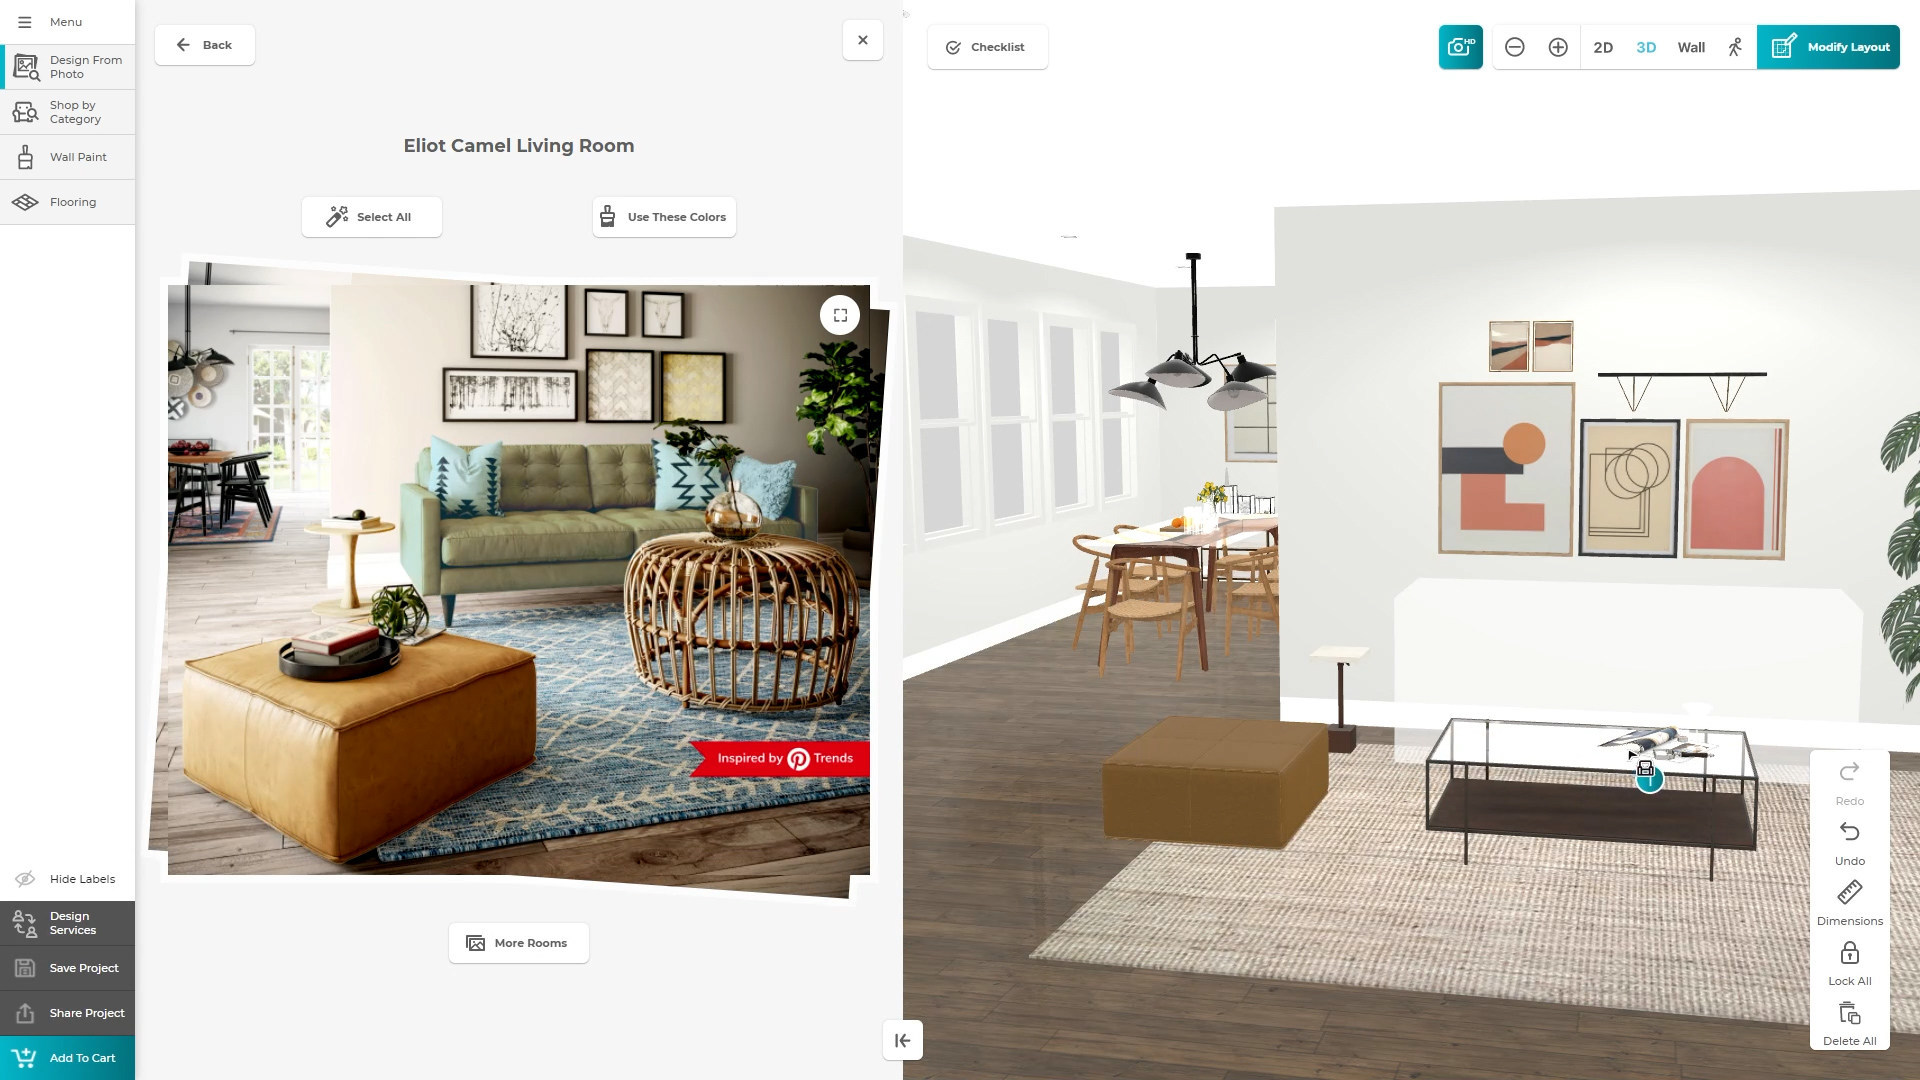 Customizable modern furniture and home improvement retailer Joybird is now offering shoppers a chance to design their own 3D living rooms using their own Pinterest photos and even buy used furniture for as much as a 55 percent discount.